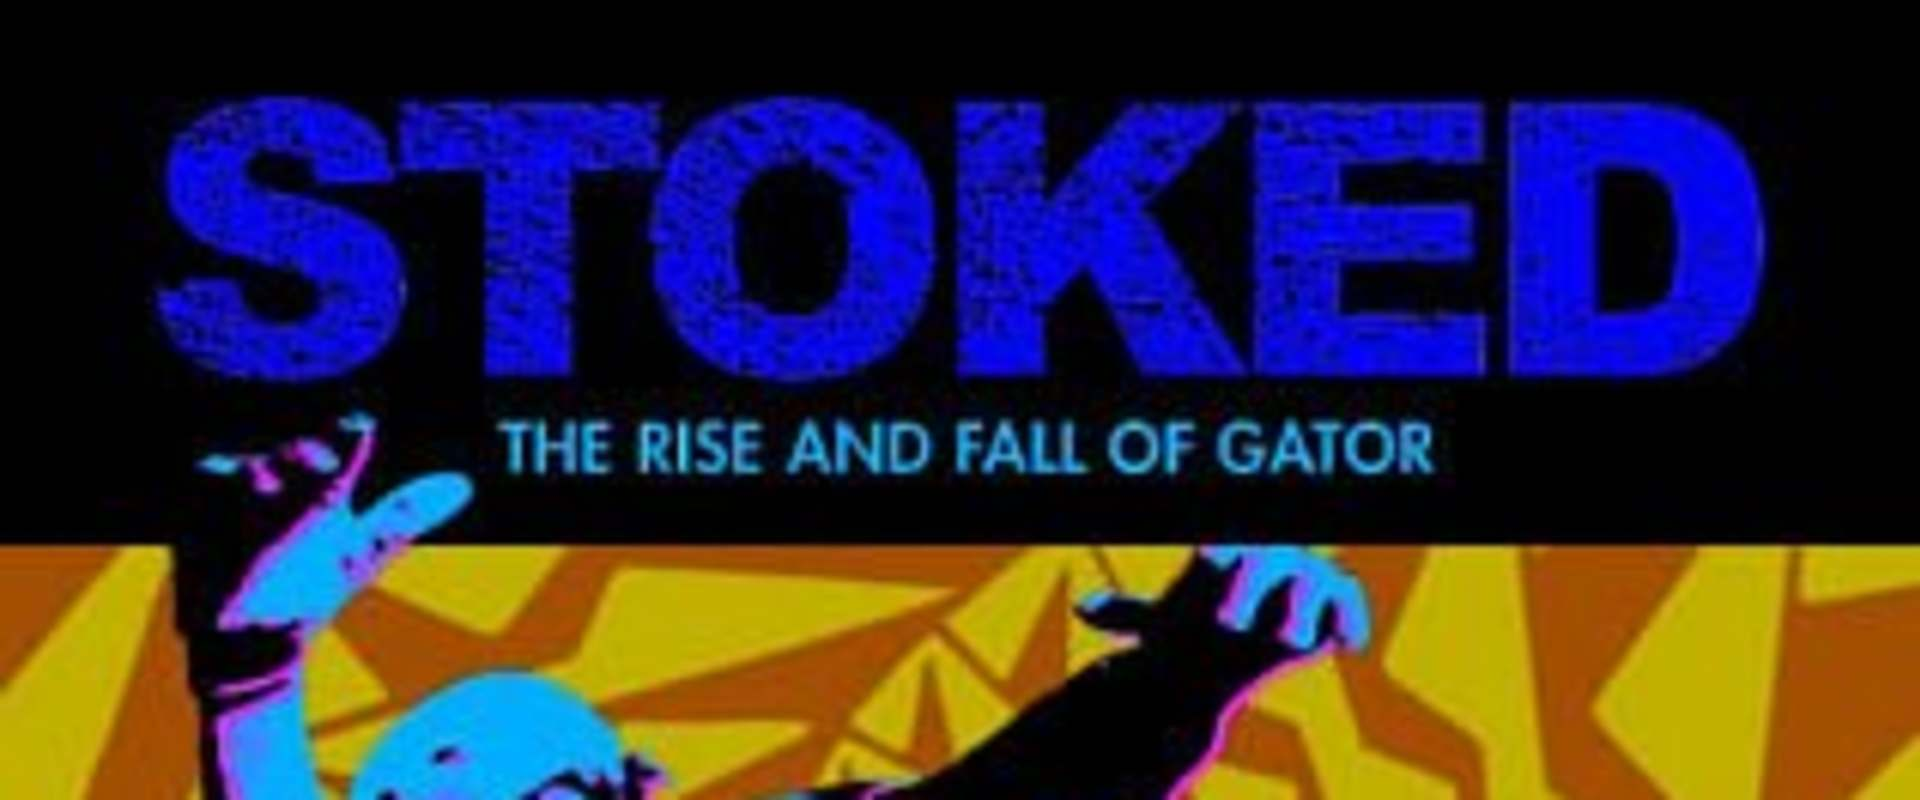 Stoked: The Rise and Fall of Gator background 1